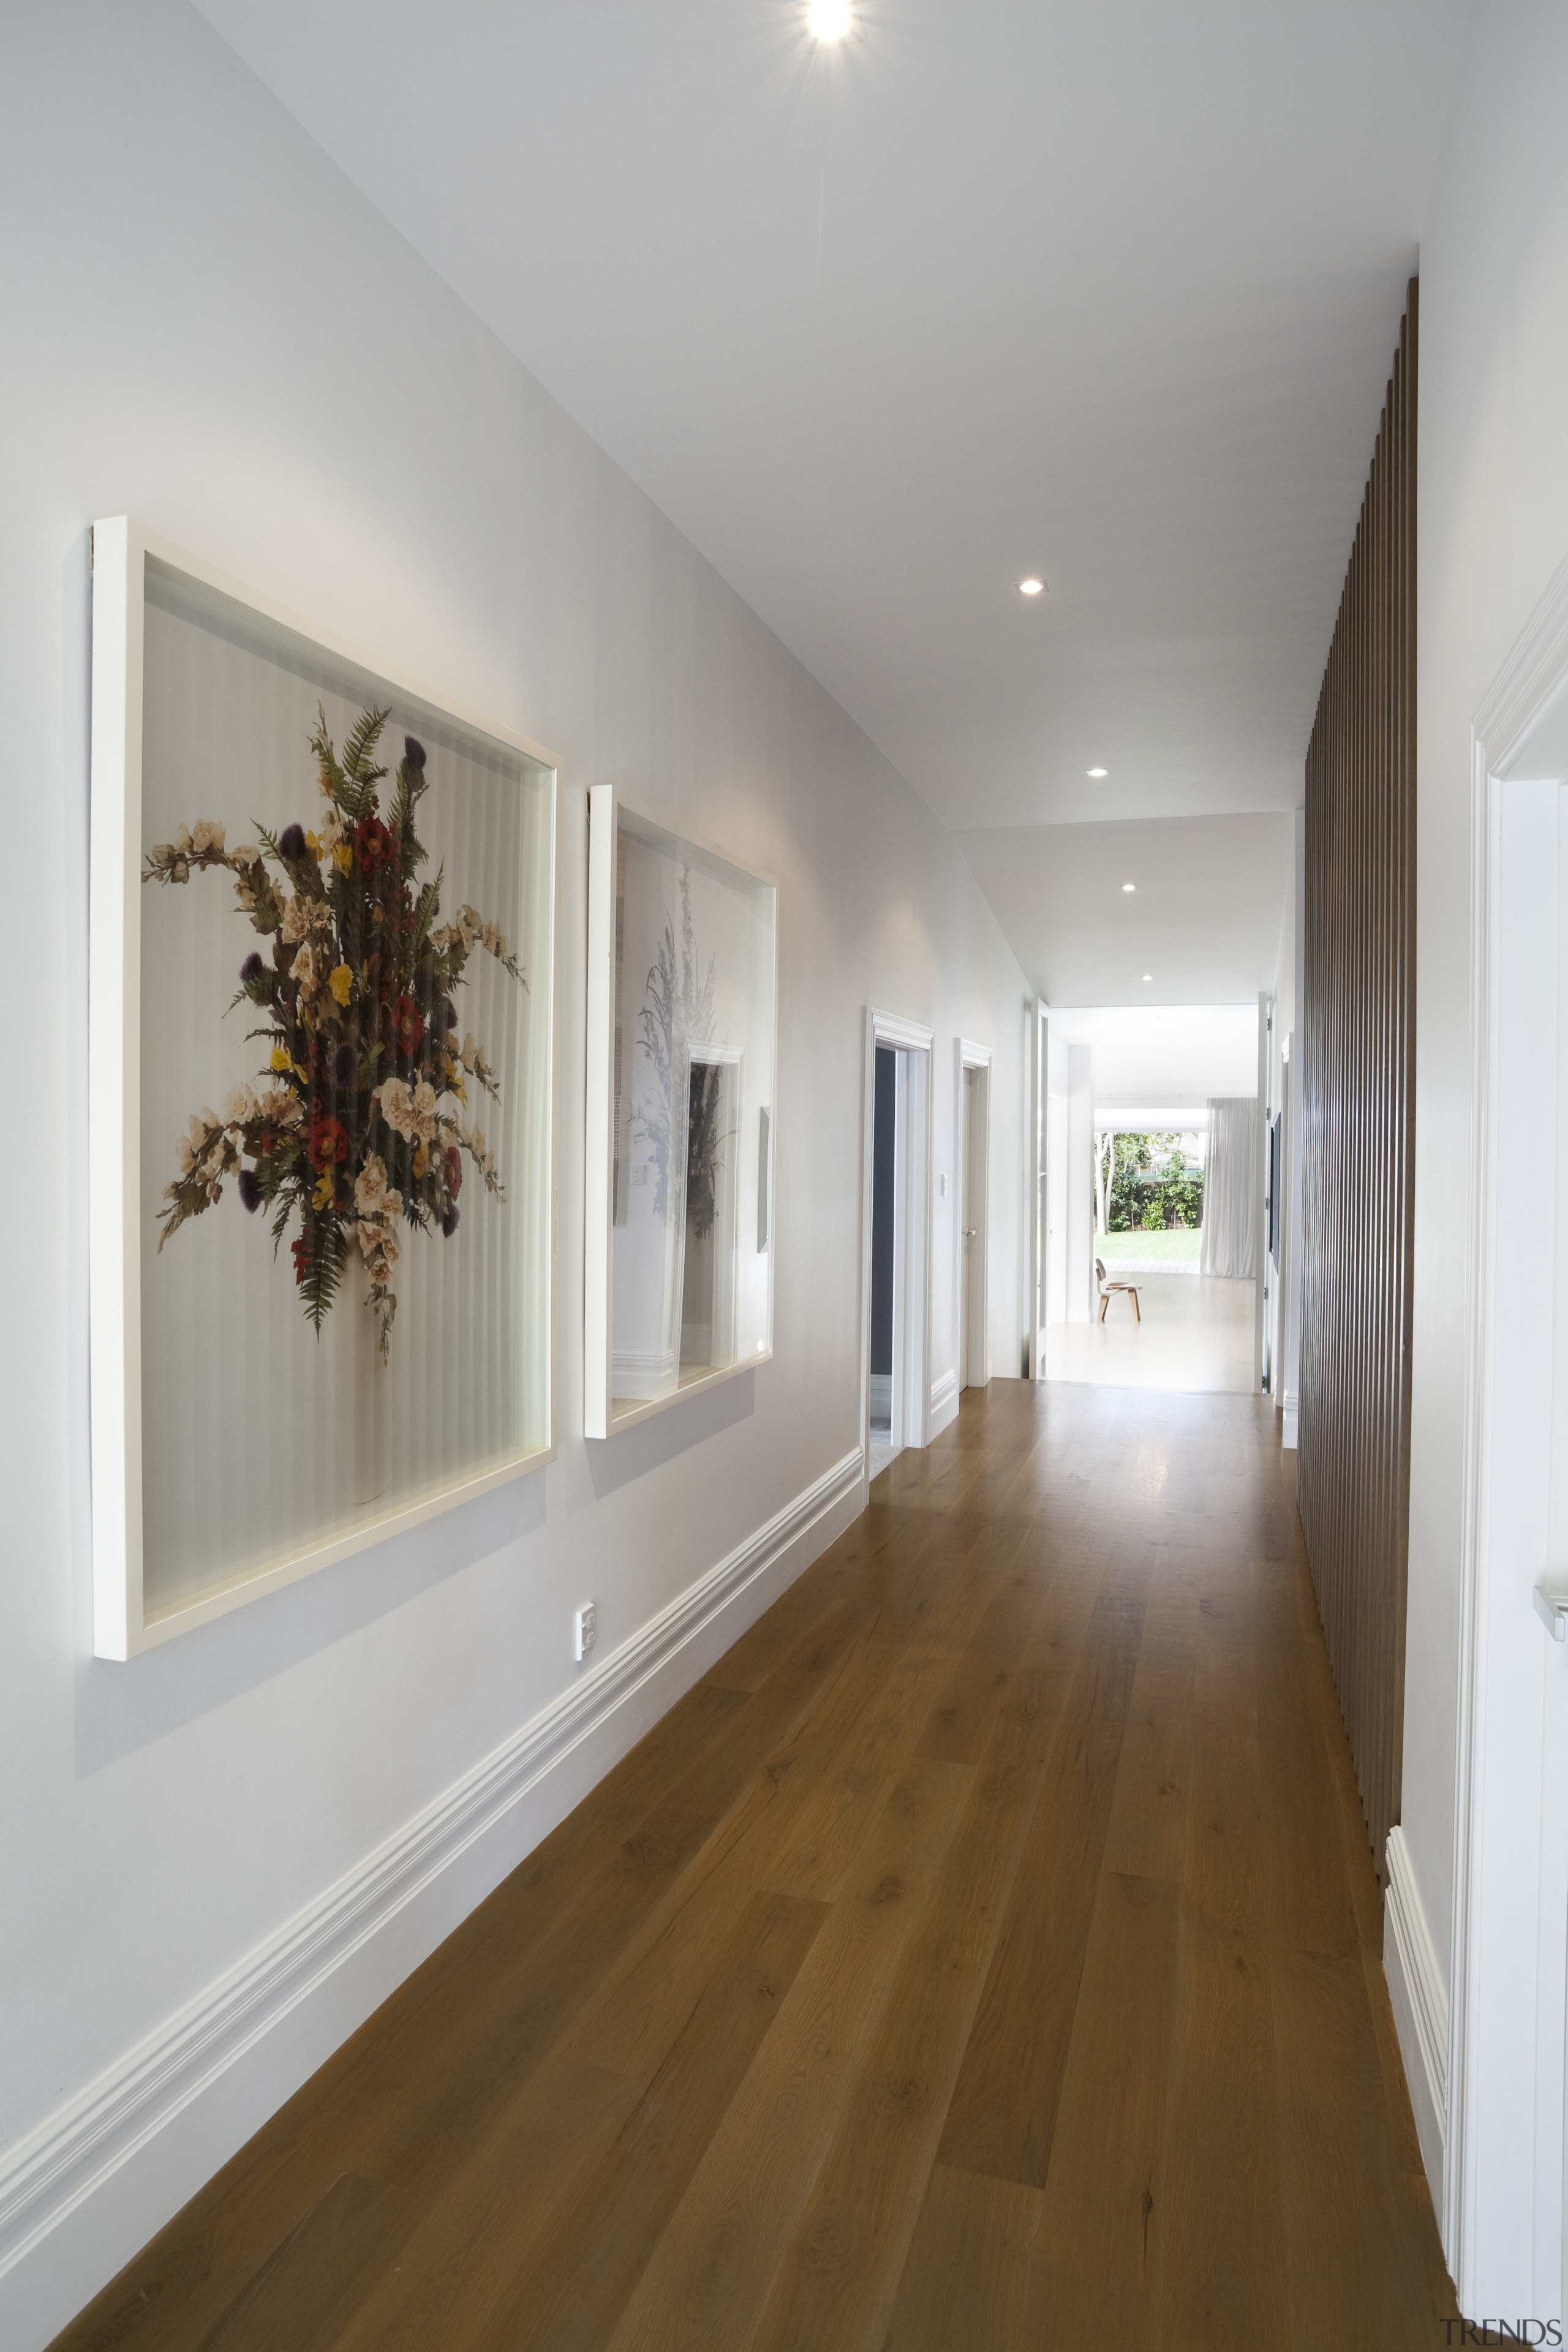 Hallway with wall art. - Renovated and modernised apartment, ceiling, daylighting, floor, flooring, hall, hardwood, home, house, interior design, laminate flooring, living room, property, real estate, room, wall, window, wood, wood flooring, gray, brown